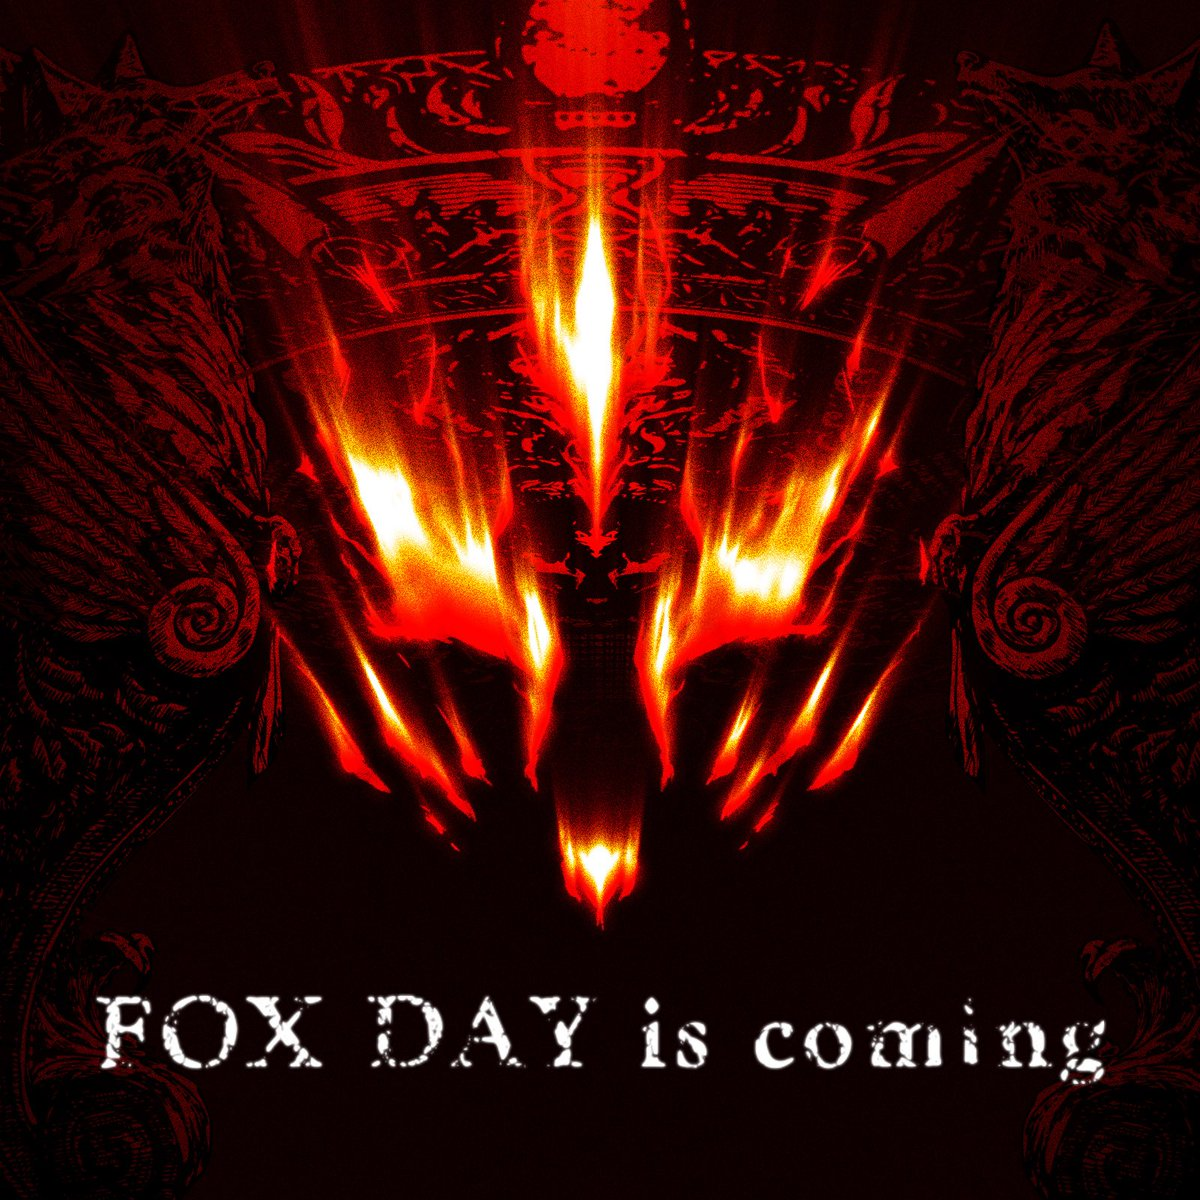 FOX DAY is coming!! V/ #BABYMETAL #FoxDay https;//t.co/5IMUH1iSFx